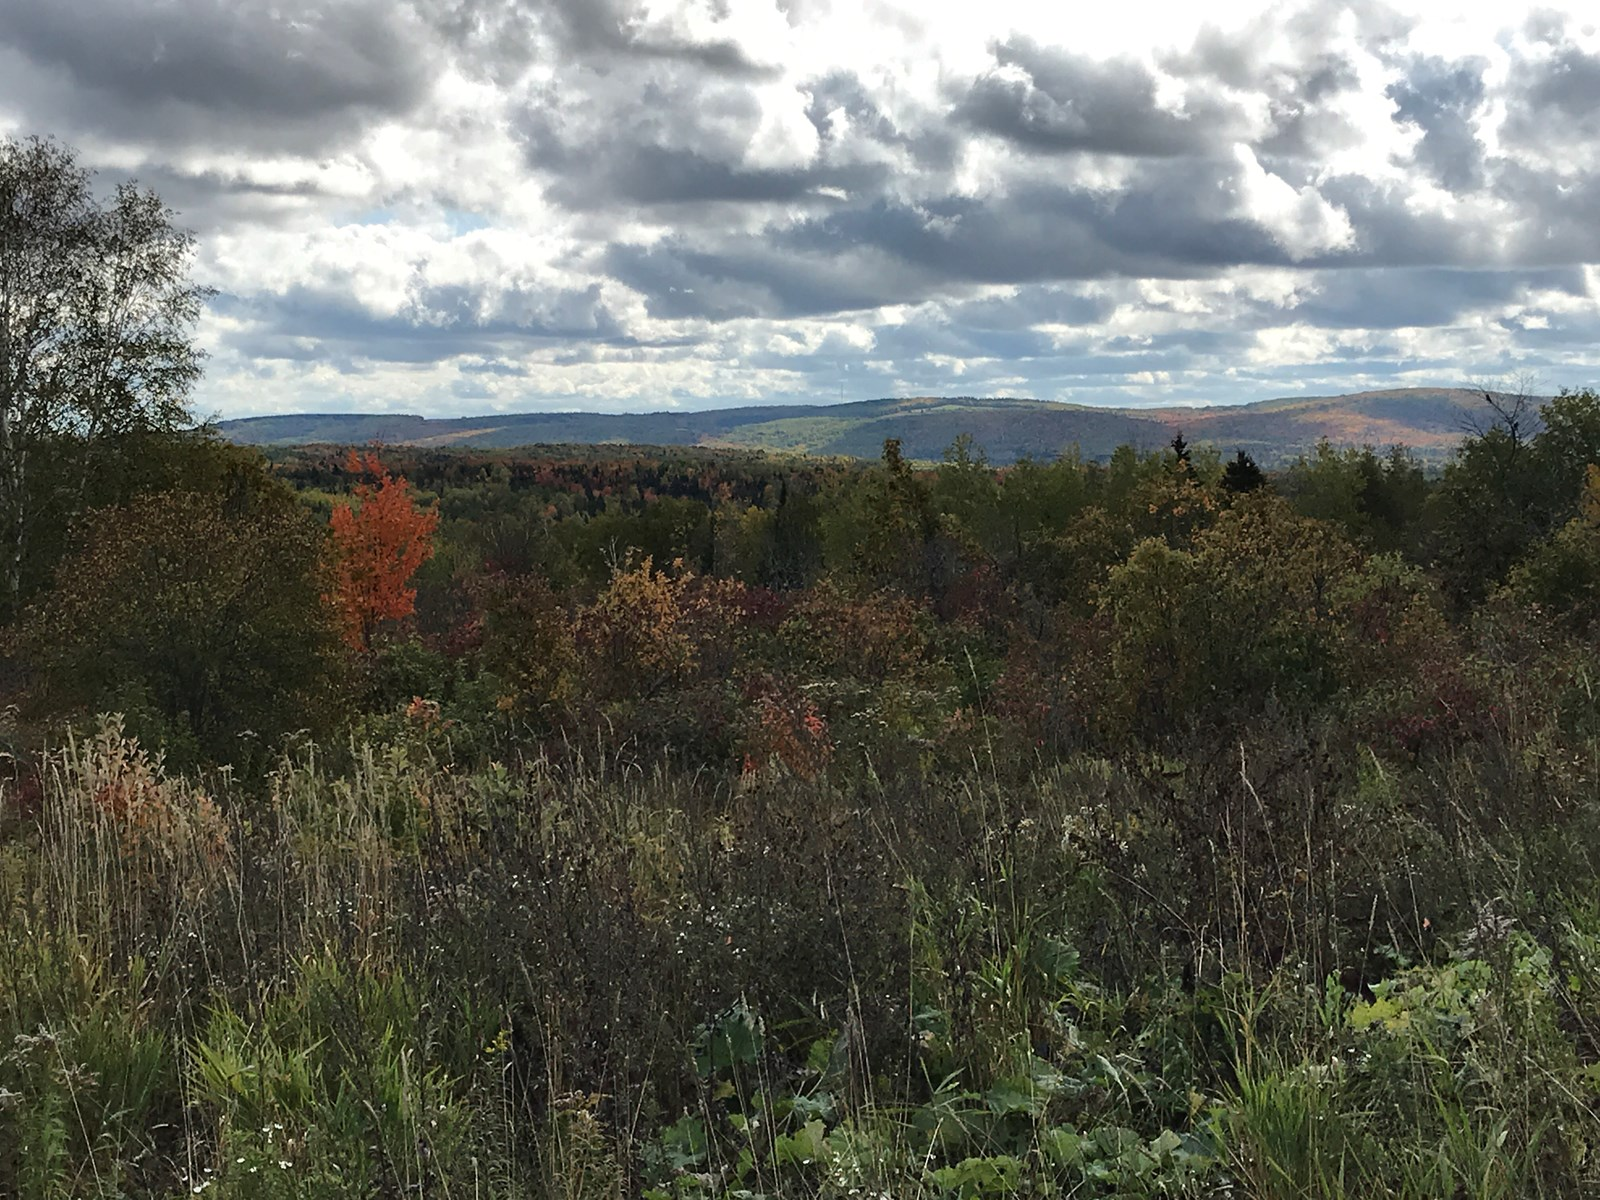 Recreational Farm Land For Sale in Aroostook County Maine